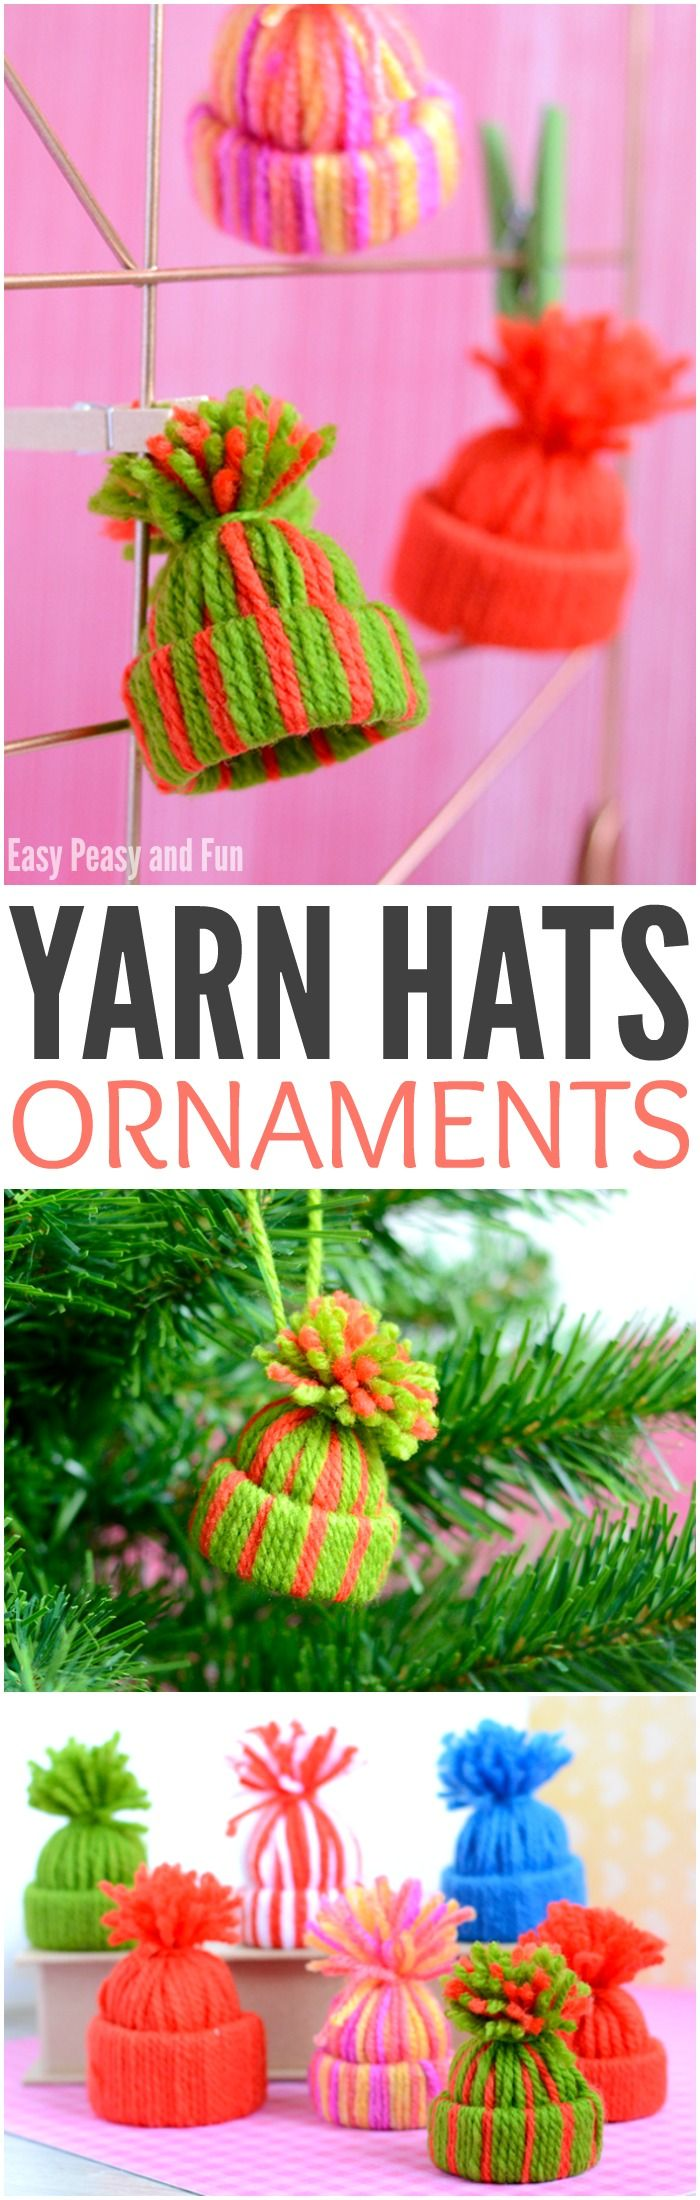 Mini Yarn Hats Ornaments – DIY Christmas Ornaments                                                                                                                                                                                 More